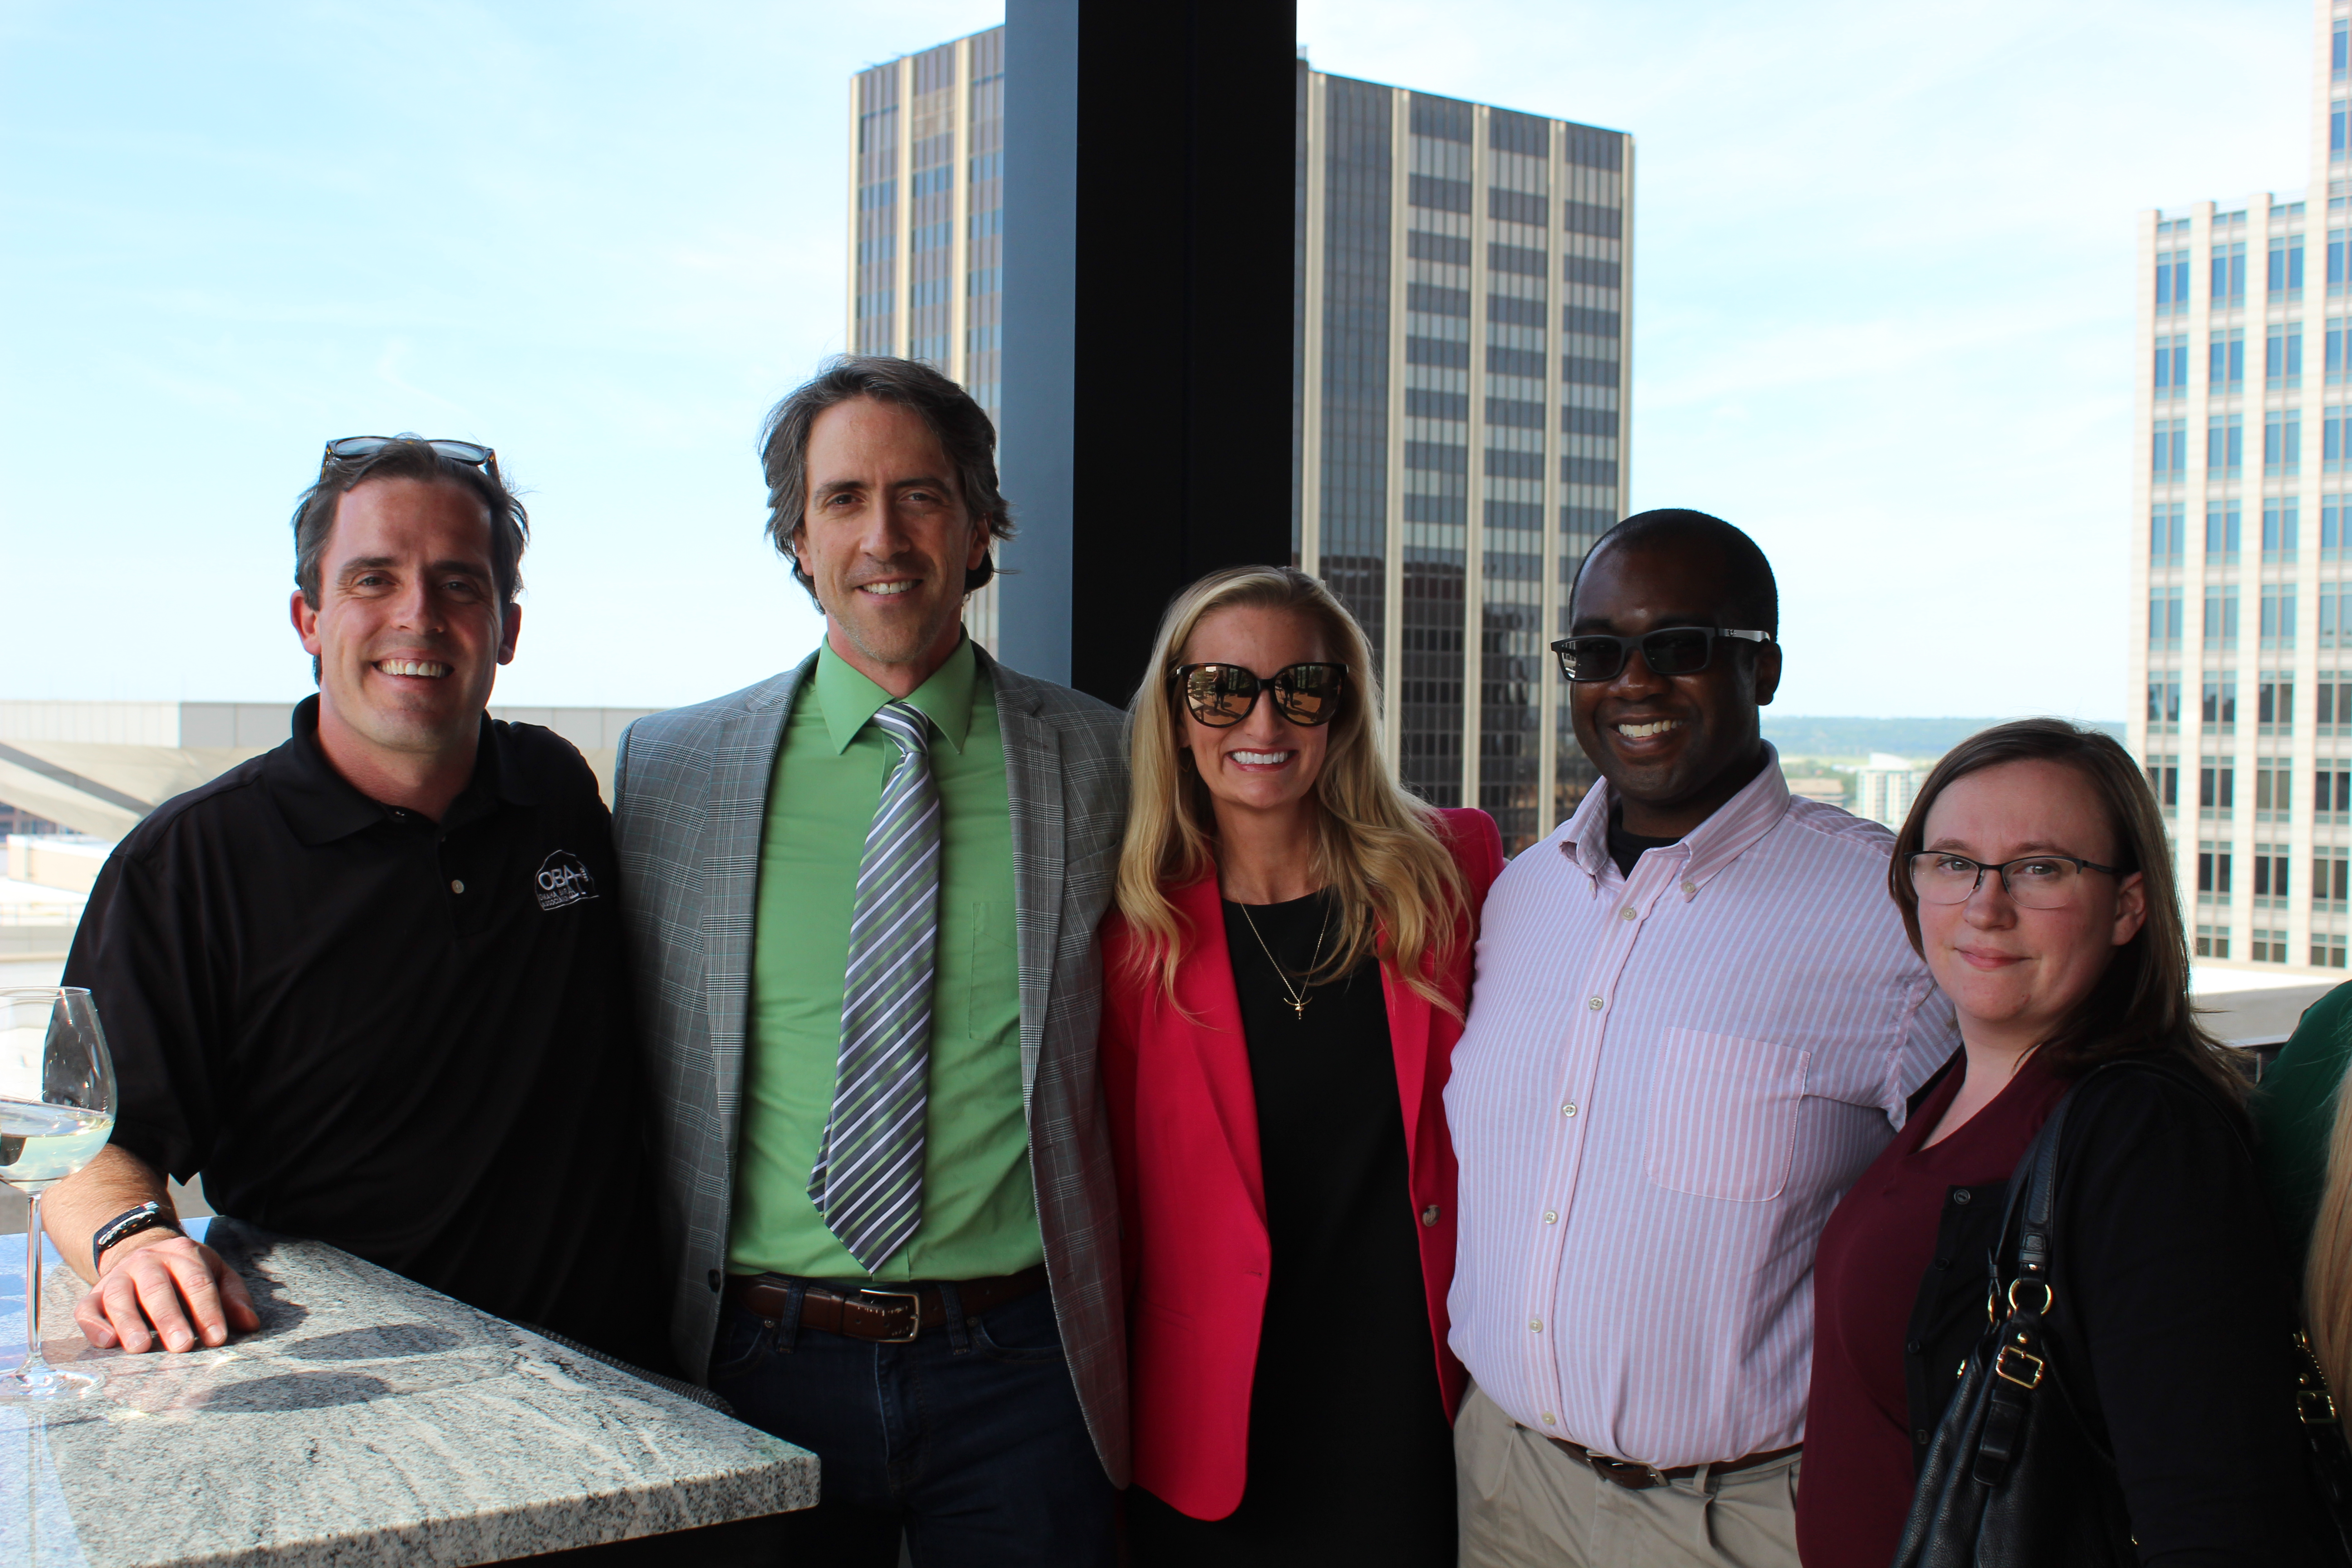 The Omaha Bar Association held its inaugural Thursday After Work gathering at the Peregrine Hotel, Thursday, June 3, 2021. Pictured from left are Dave Sommers, Scott Hahn, Hannah Sommers, Stephen Asante and Danielle Forsgren. (David Golbitz/Daily Record)